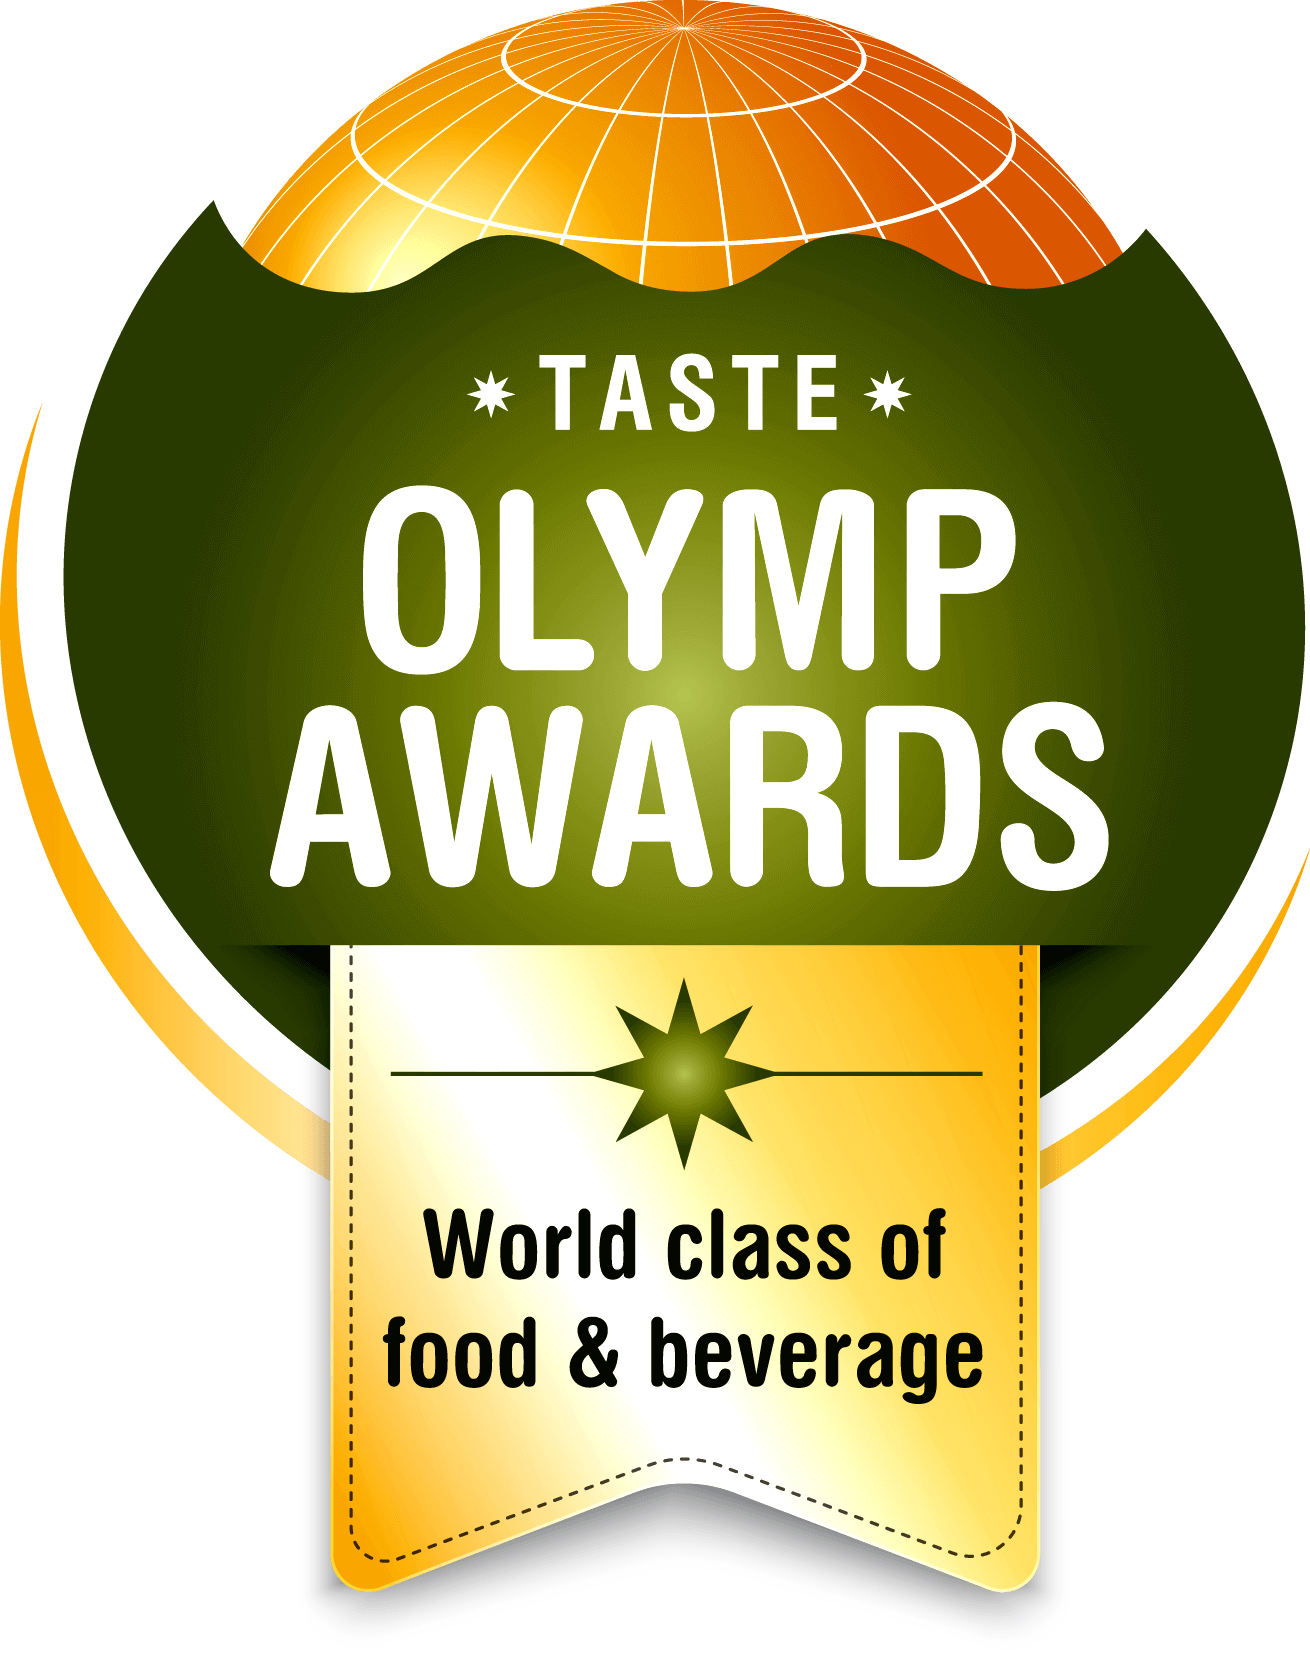 Olymp Awards Taste